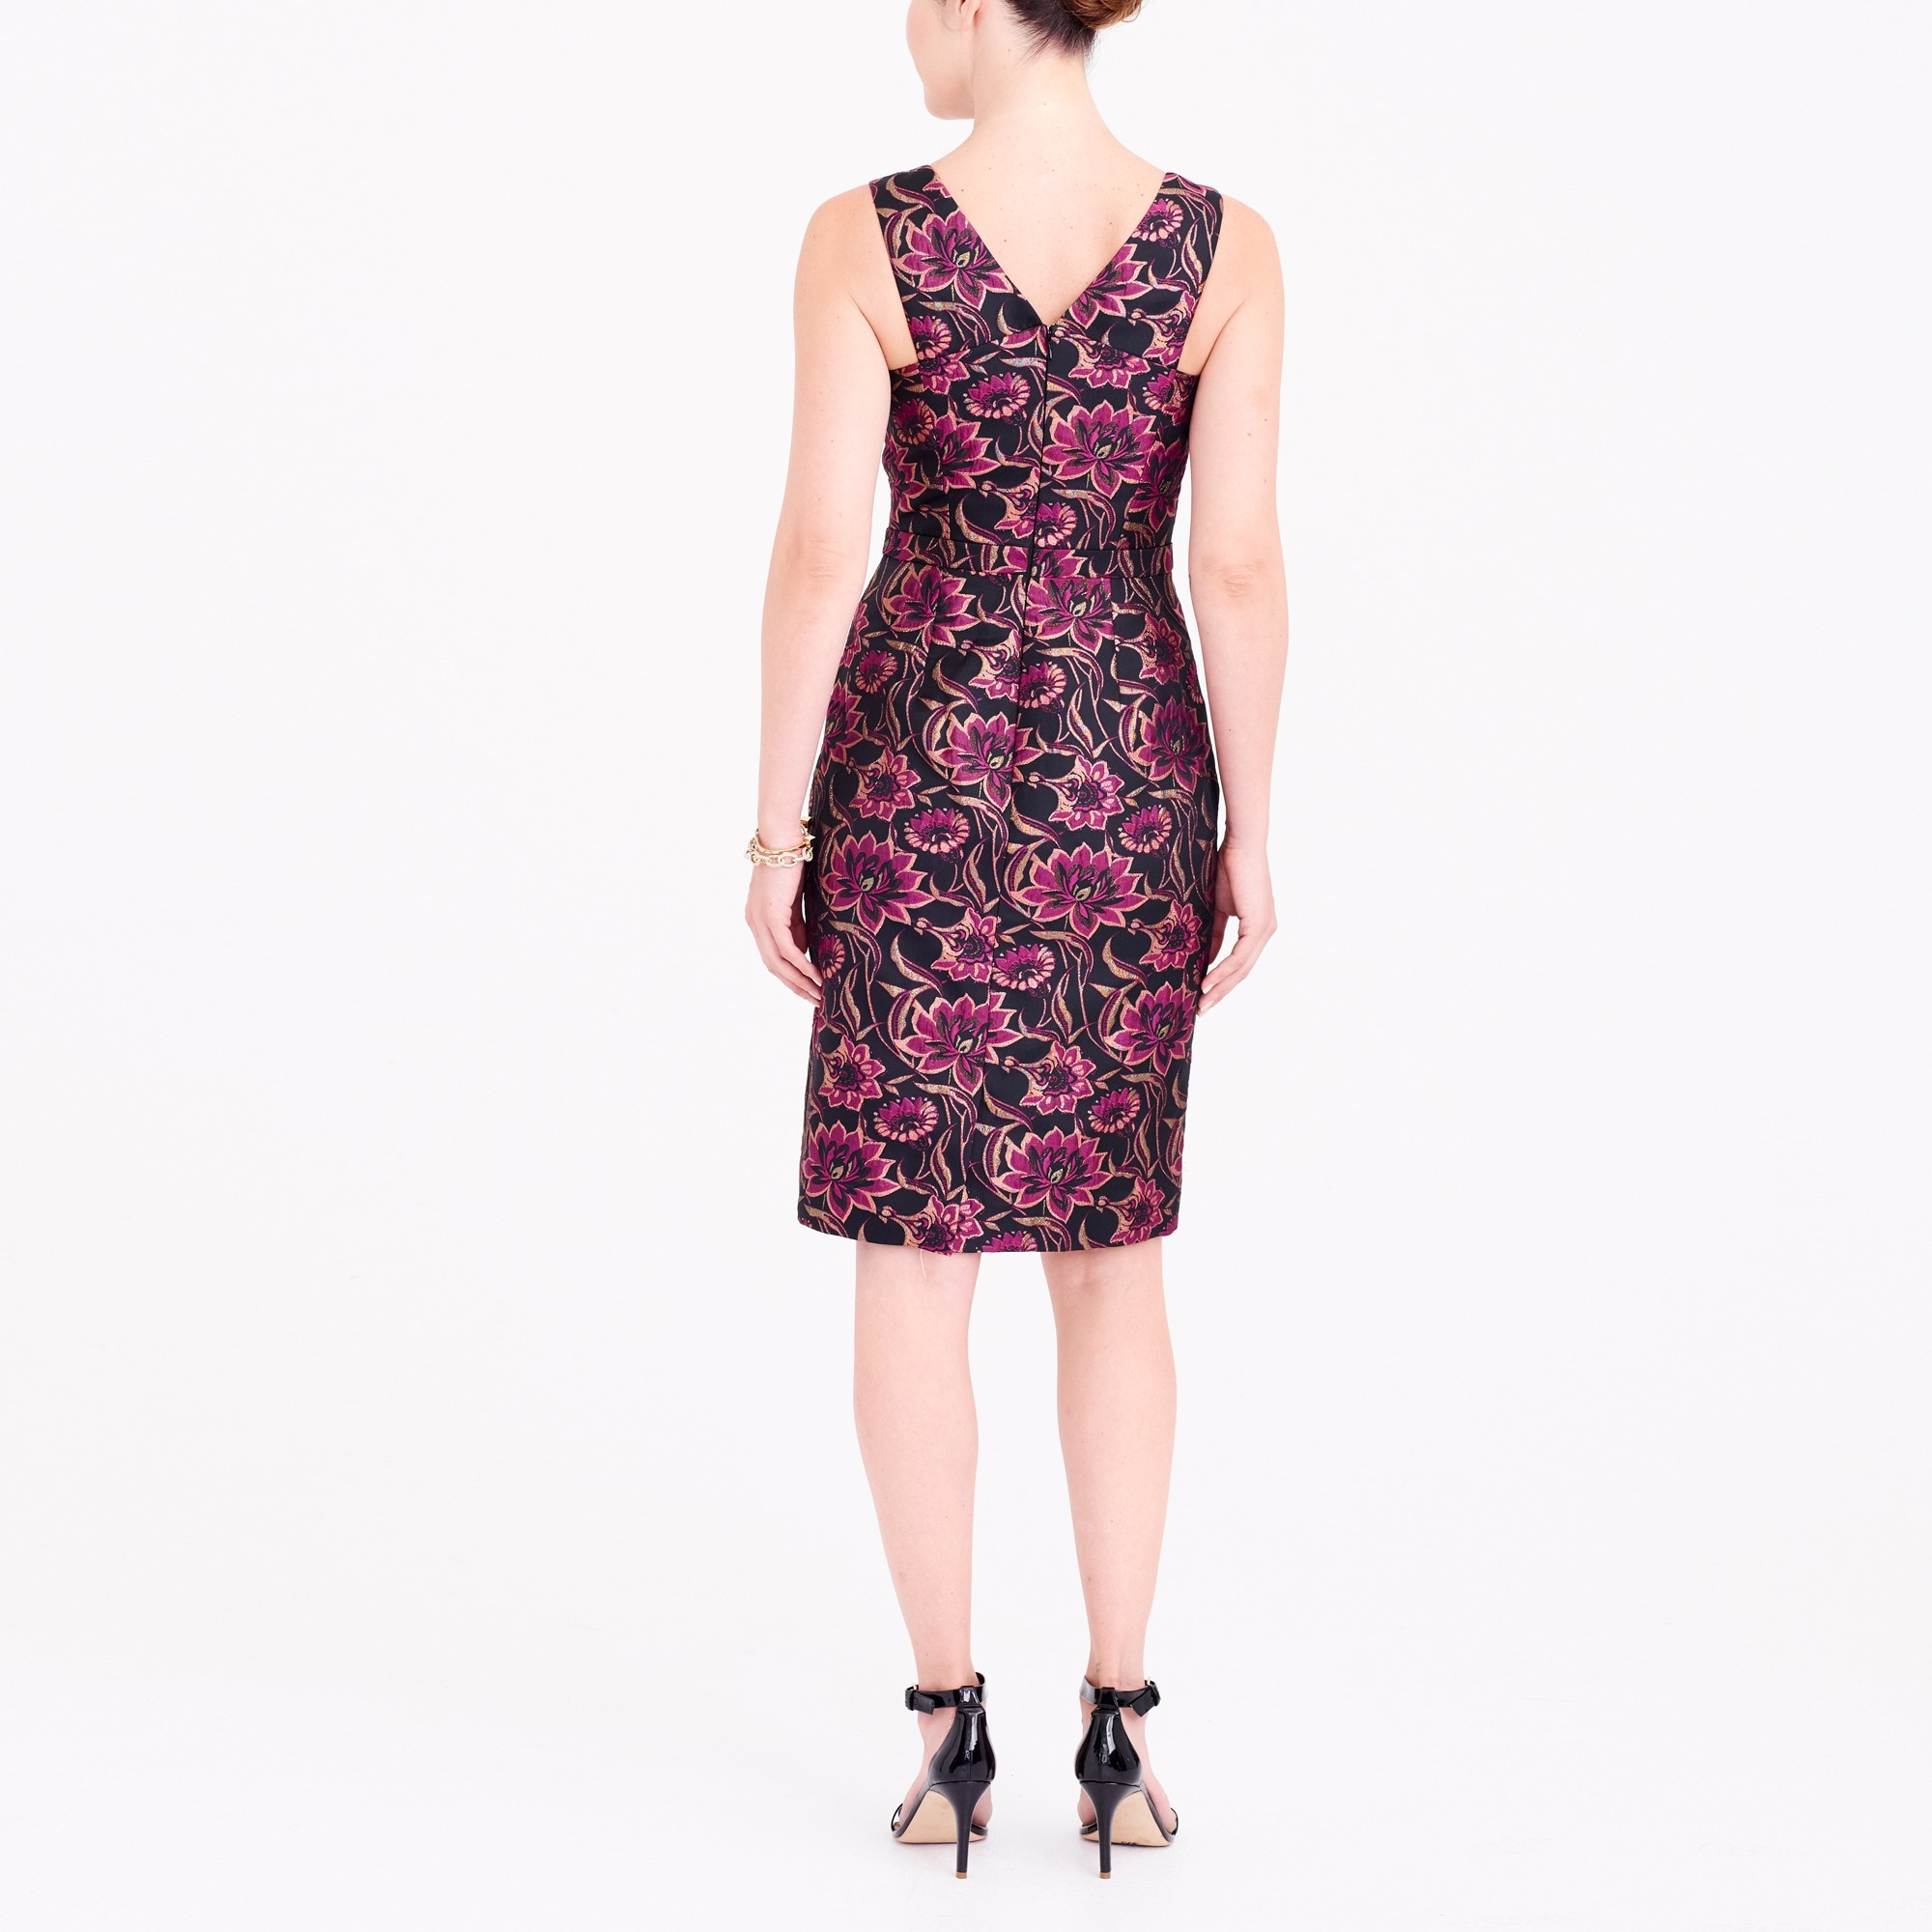 Image 3 for Jacquard V-neck dress